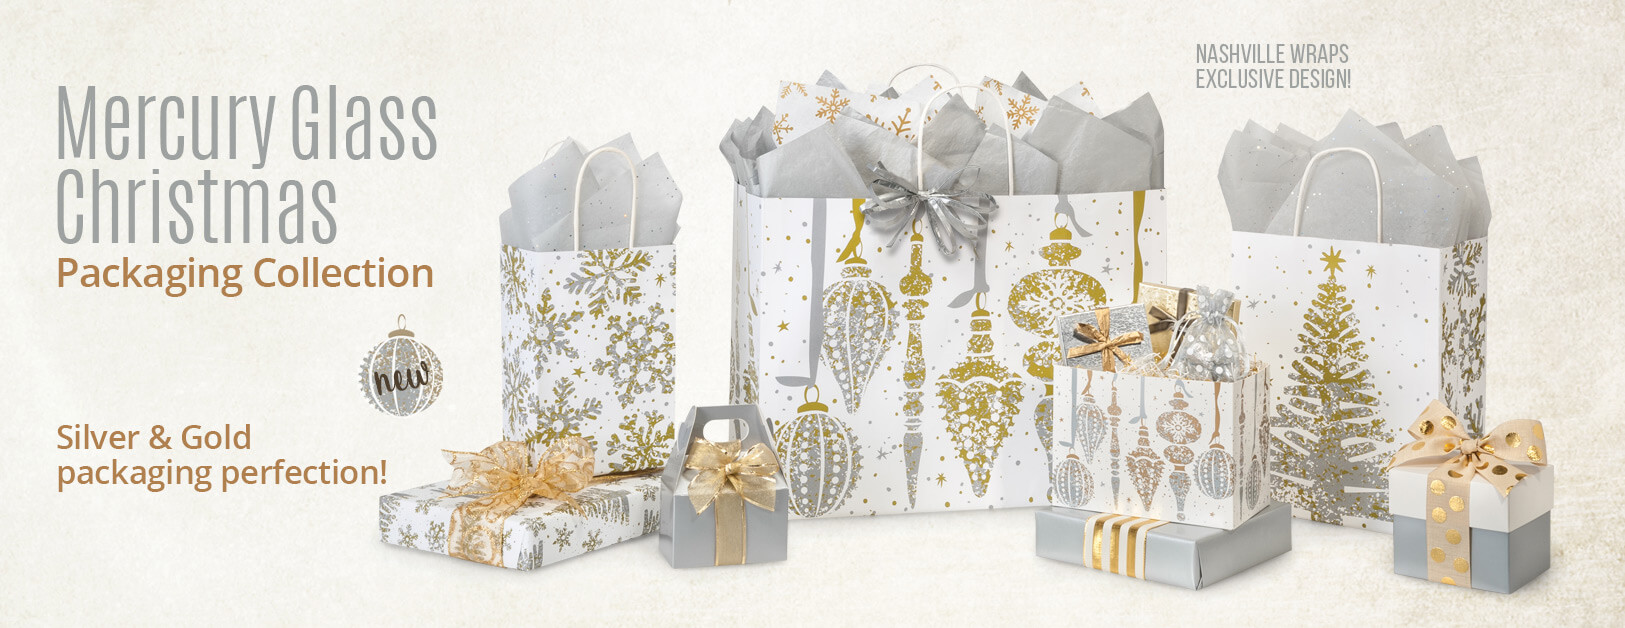 Mercury Glass Christmas Shopping Bags Collection from Nashville Wraps